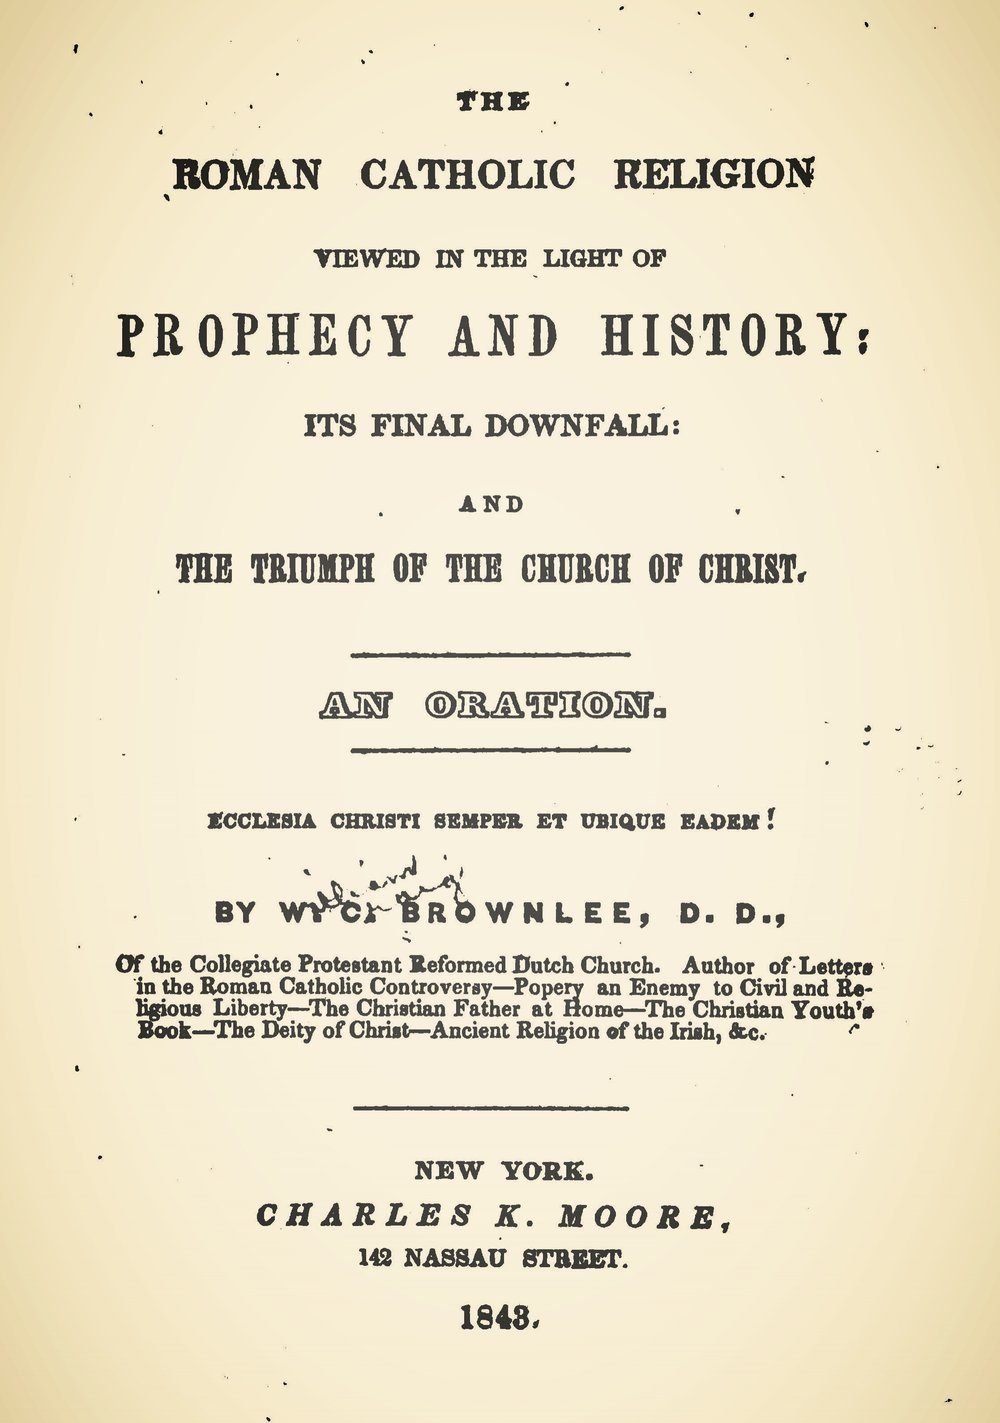 Brownlee, William Craig, The Roman Catholic Religion Viewed in the Light of Prophecy and History Title Page.jpg